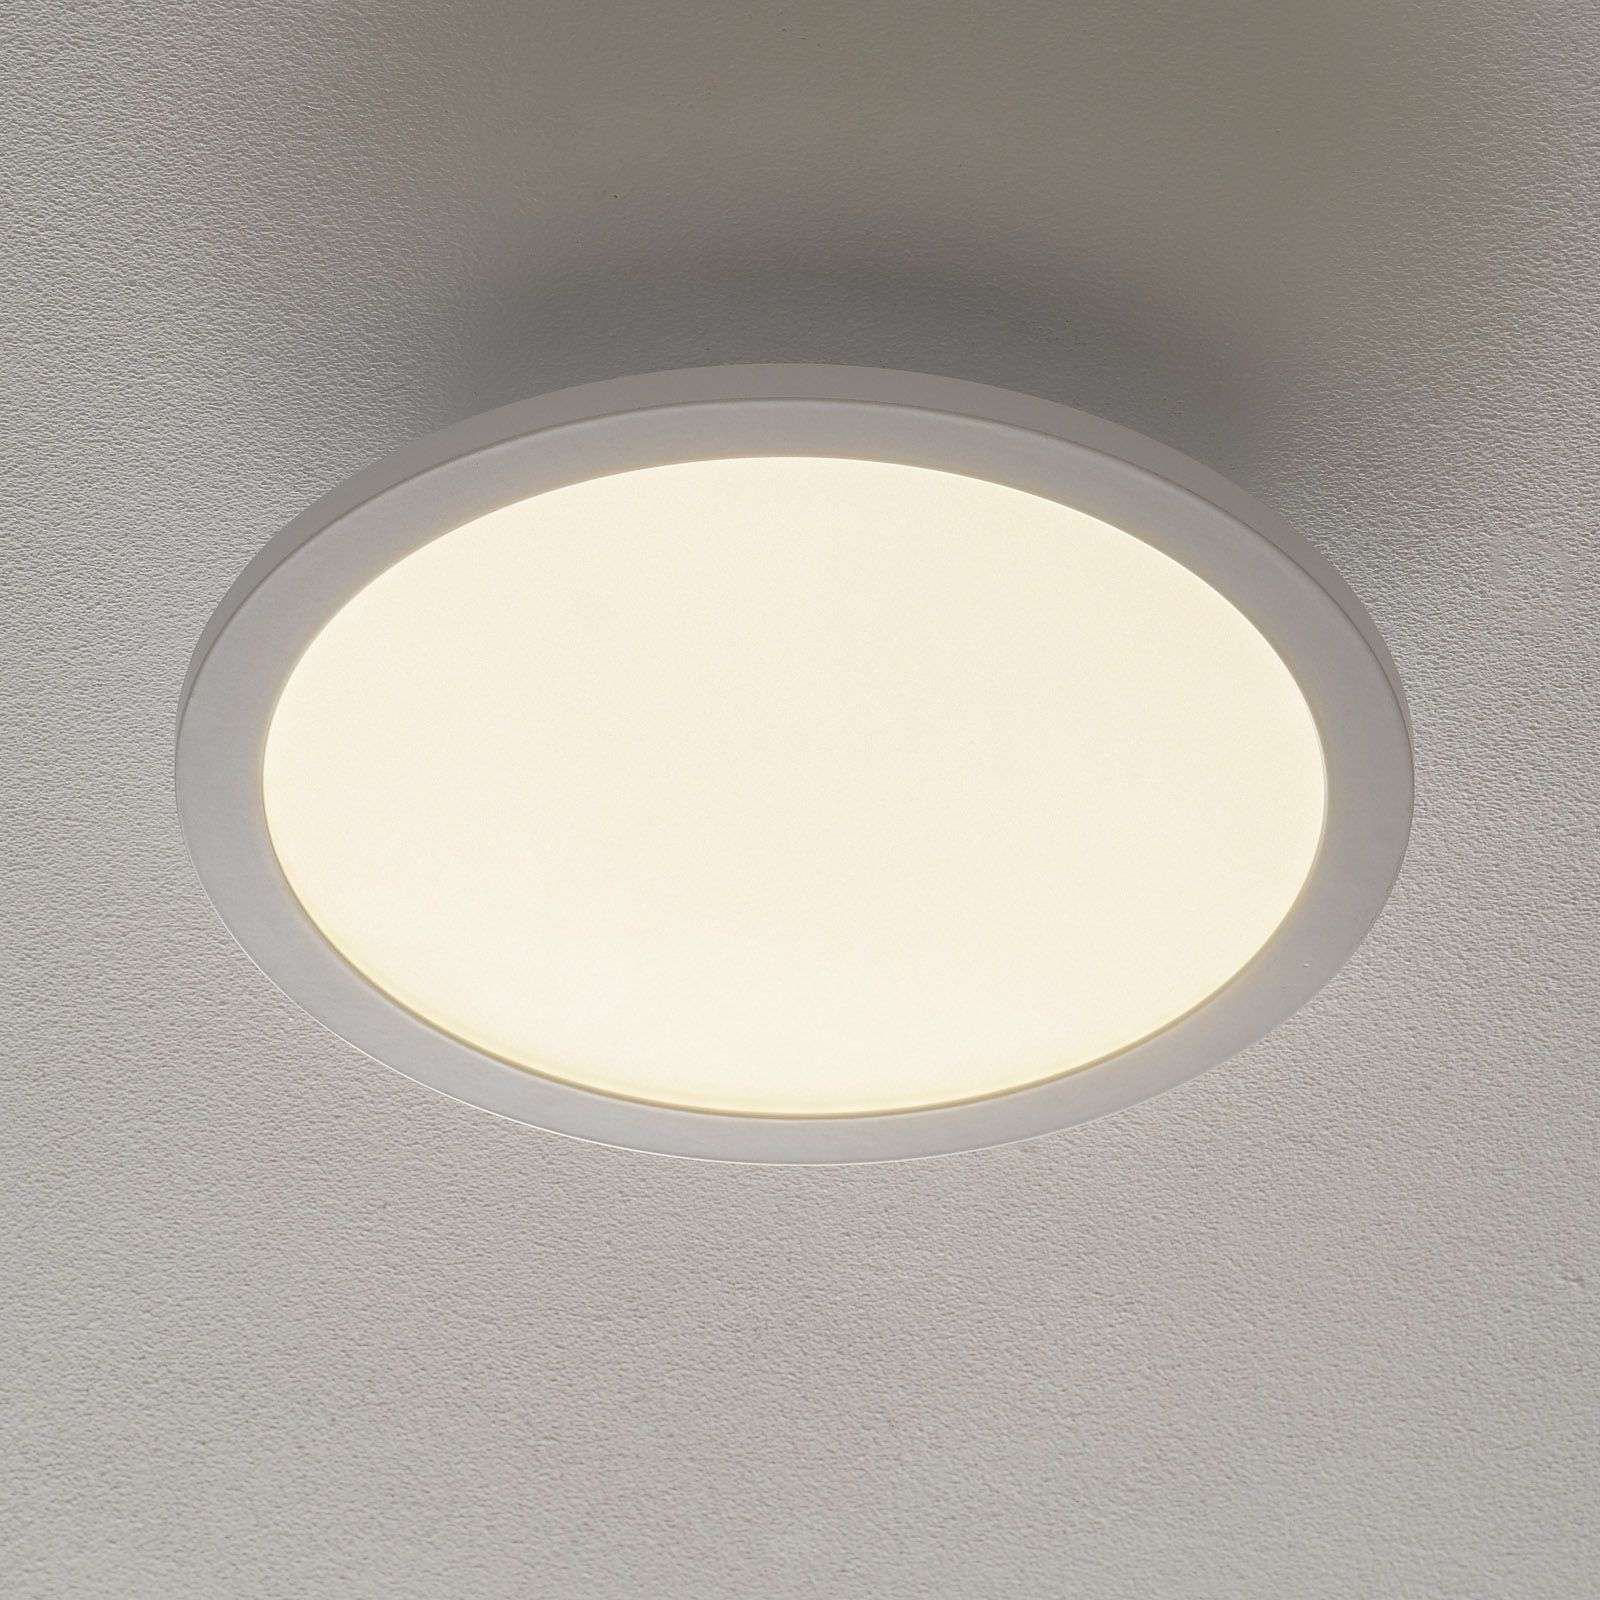 EGLO connect Sarsina-C LED plafondlamp, 30cm